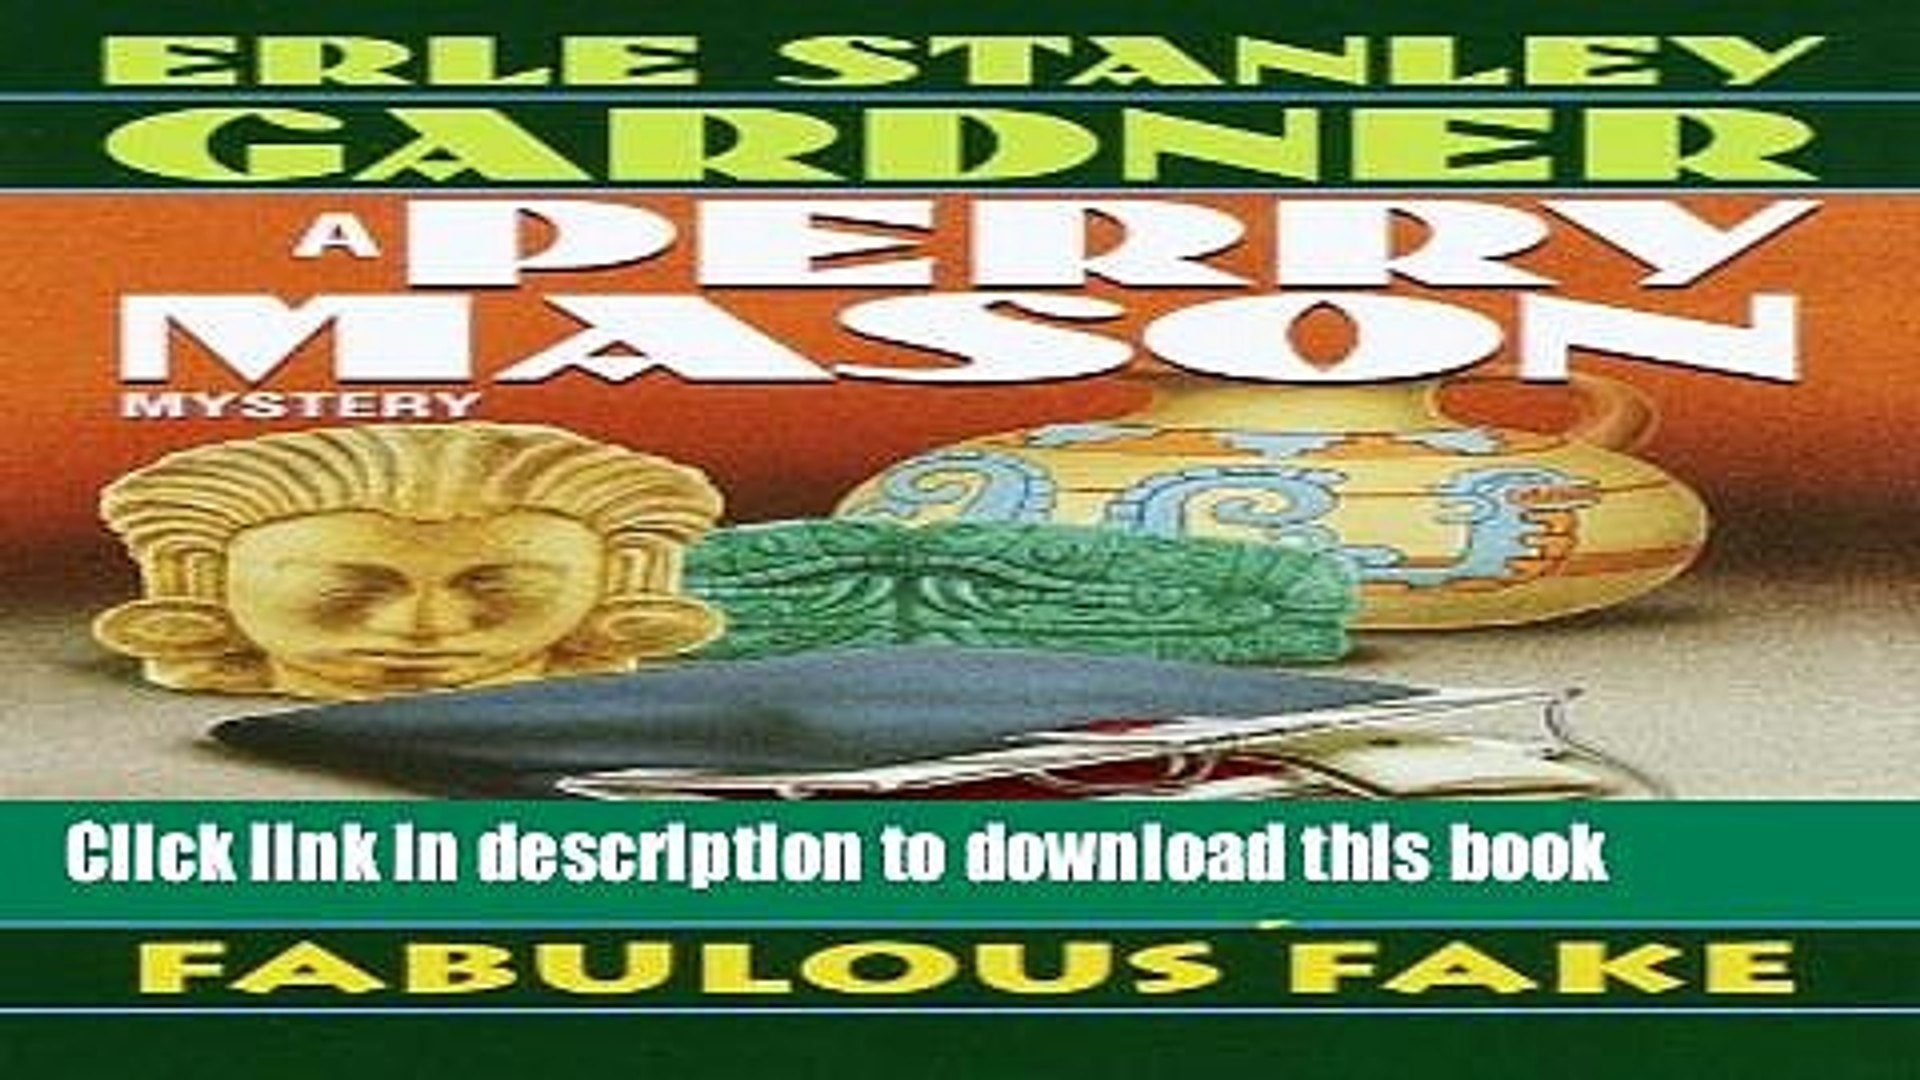 [Popular] The Case of the Fabulous Fake (Perry Mason Mysteries (Fawcett Books)) Kindle Free